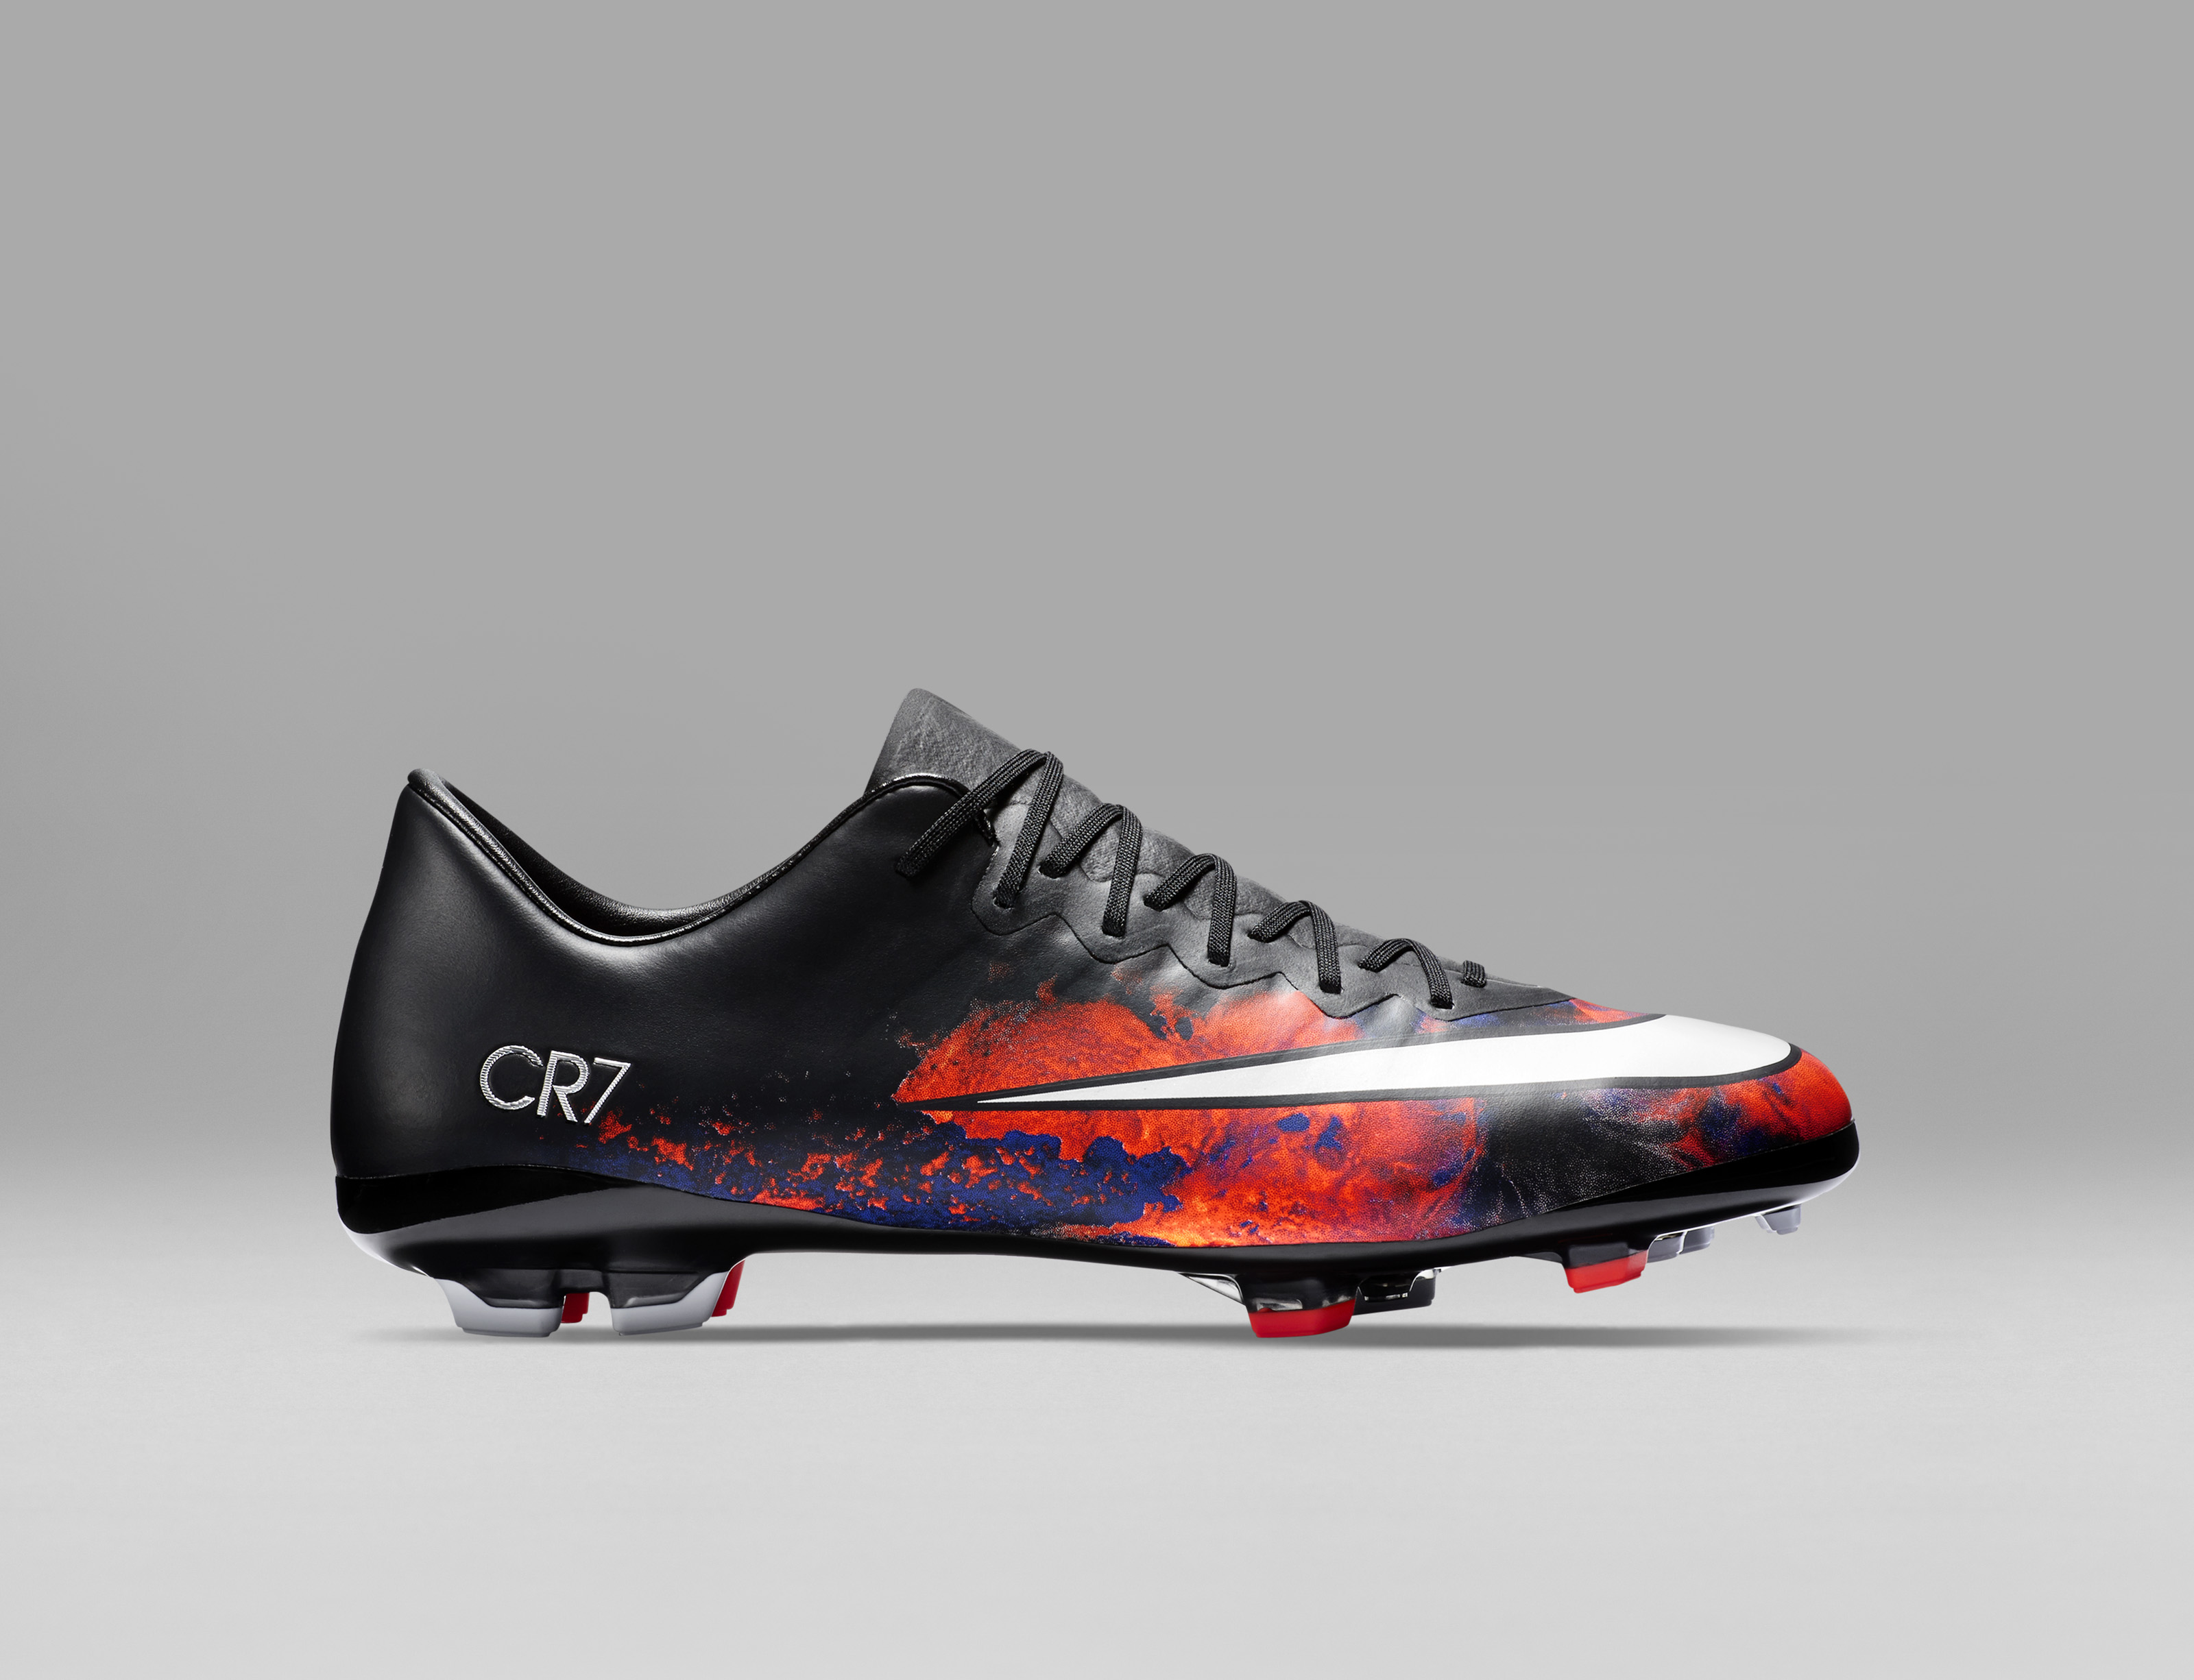 4f5ab077fe7 mercurial vapor 10 cr7 on sale   OFF56% Discounts